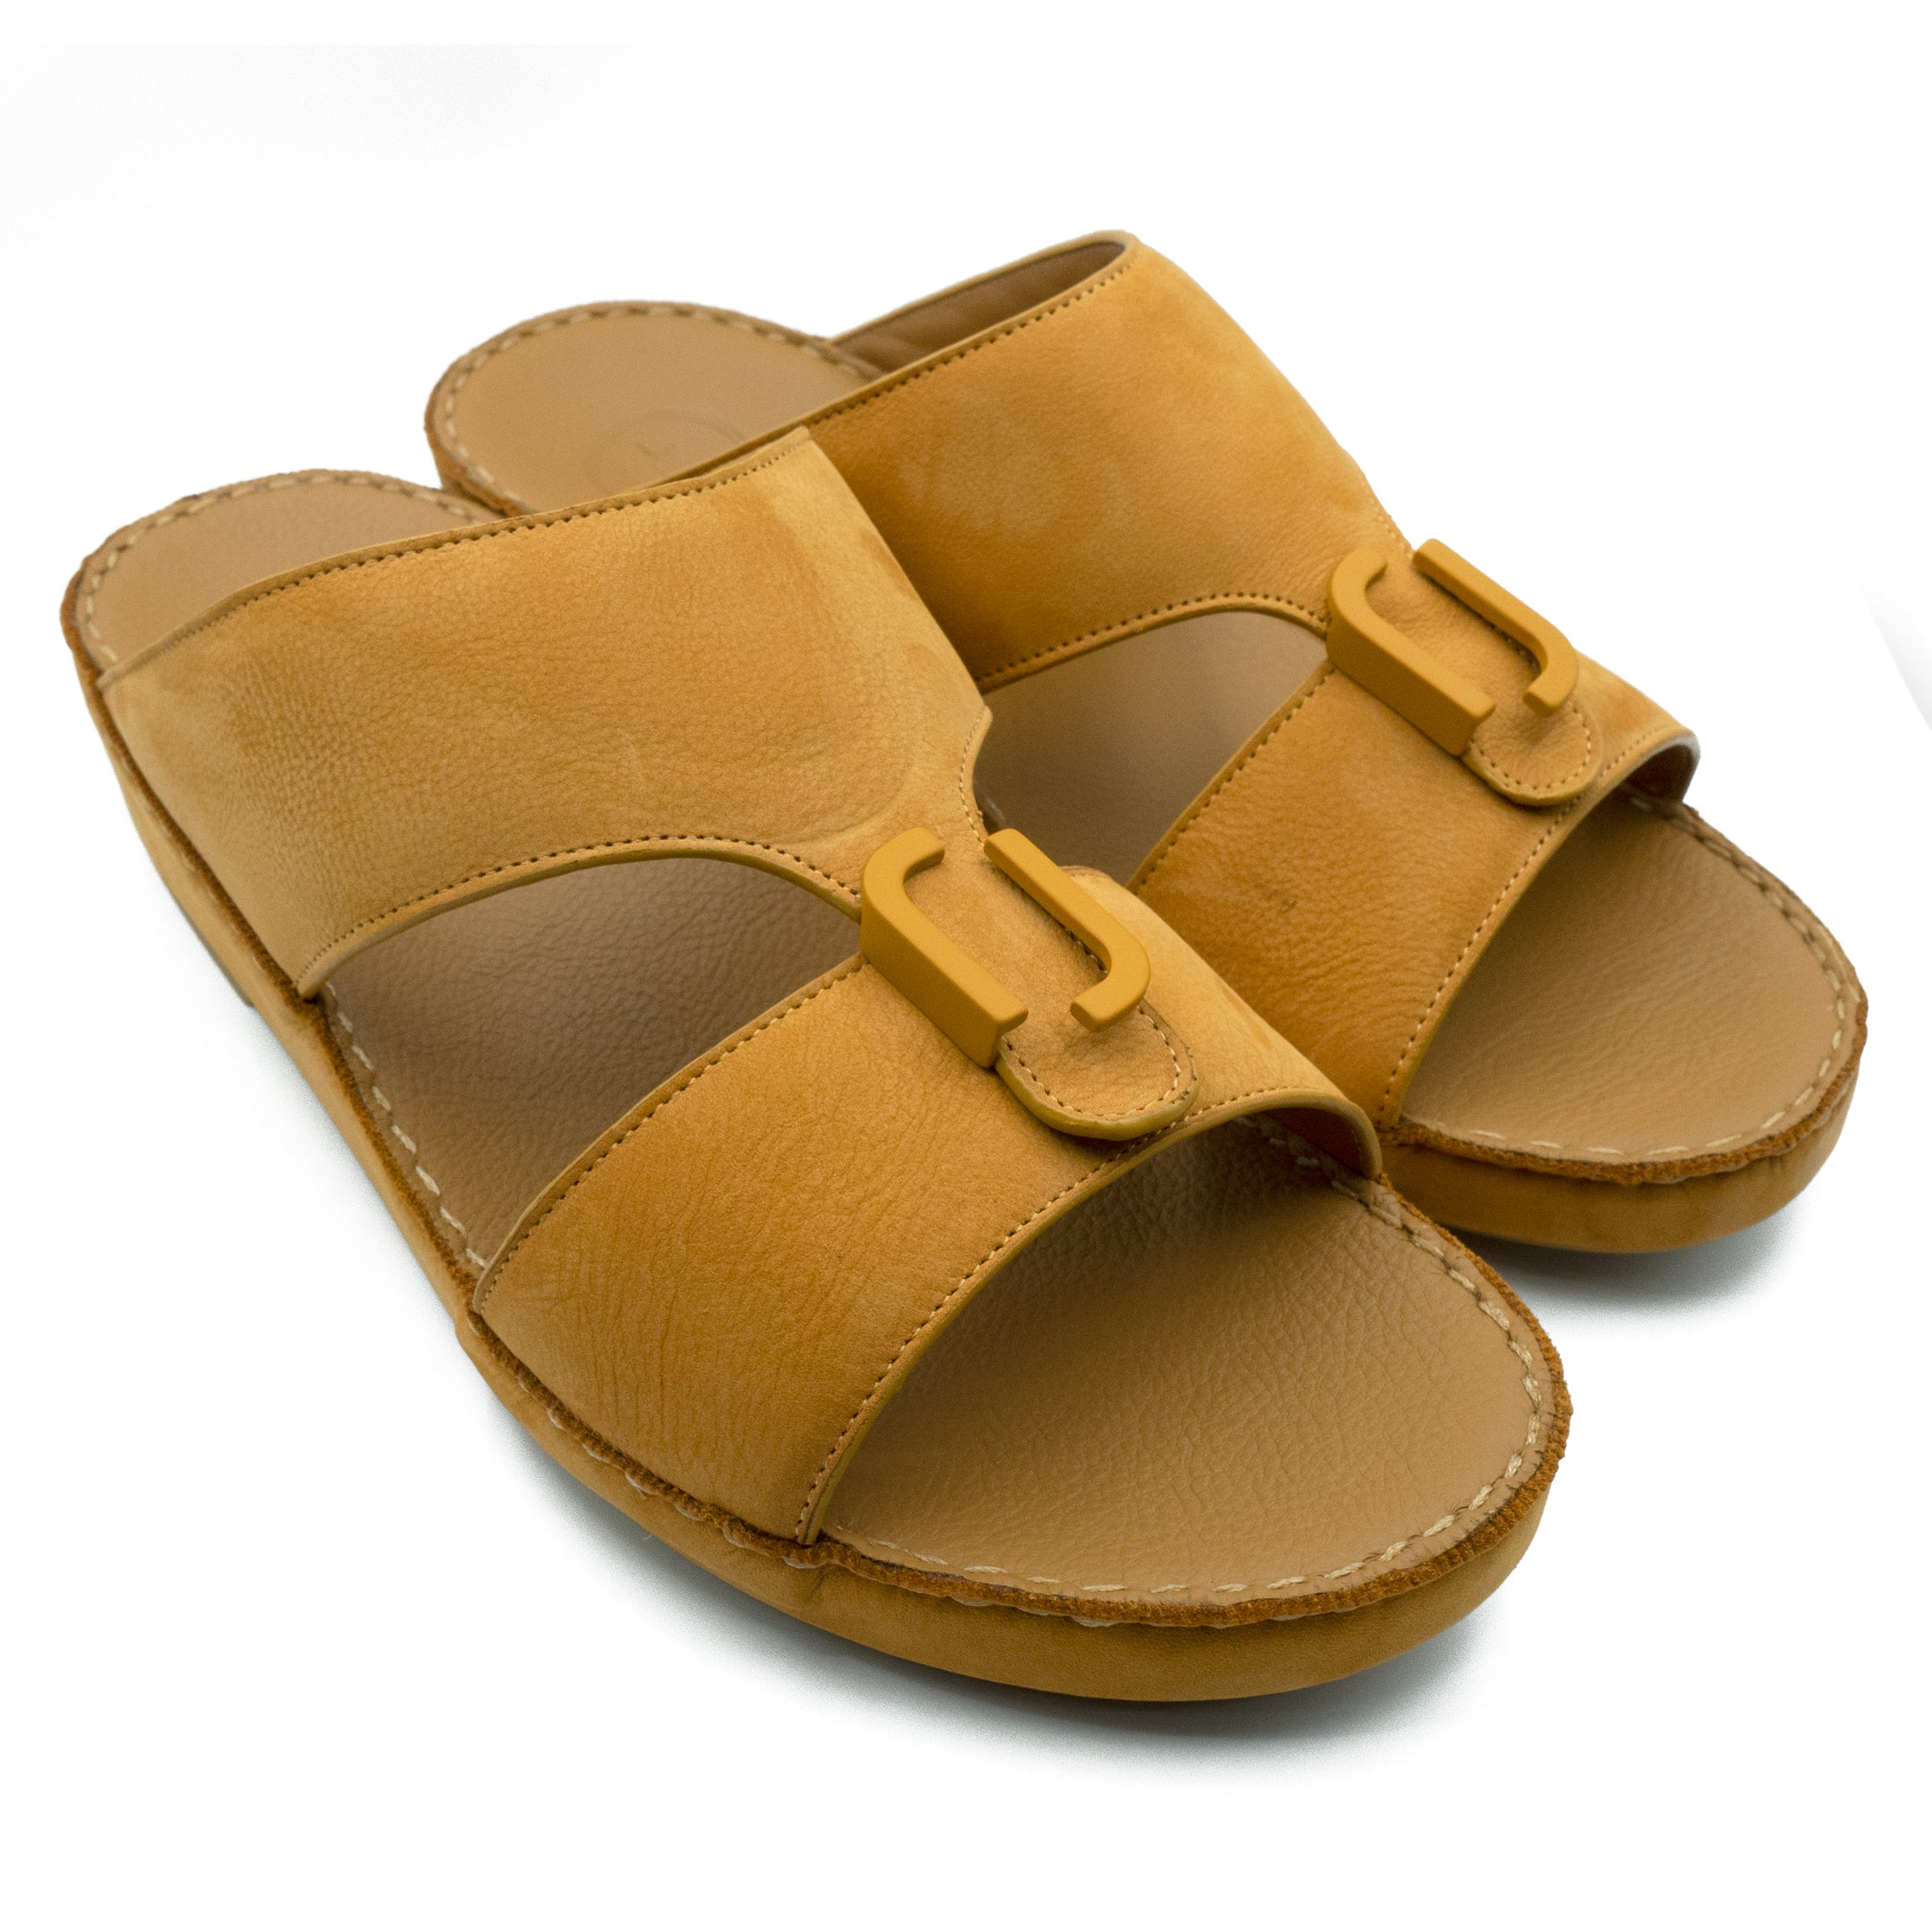 Tan, Suede, Classic, Flat, Sandals, Ramadan Collection, Arabic, Sandals, Accessories